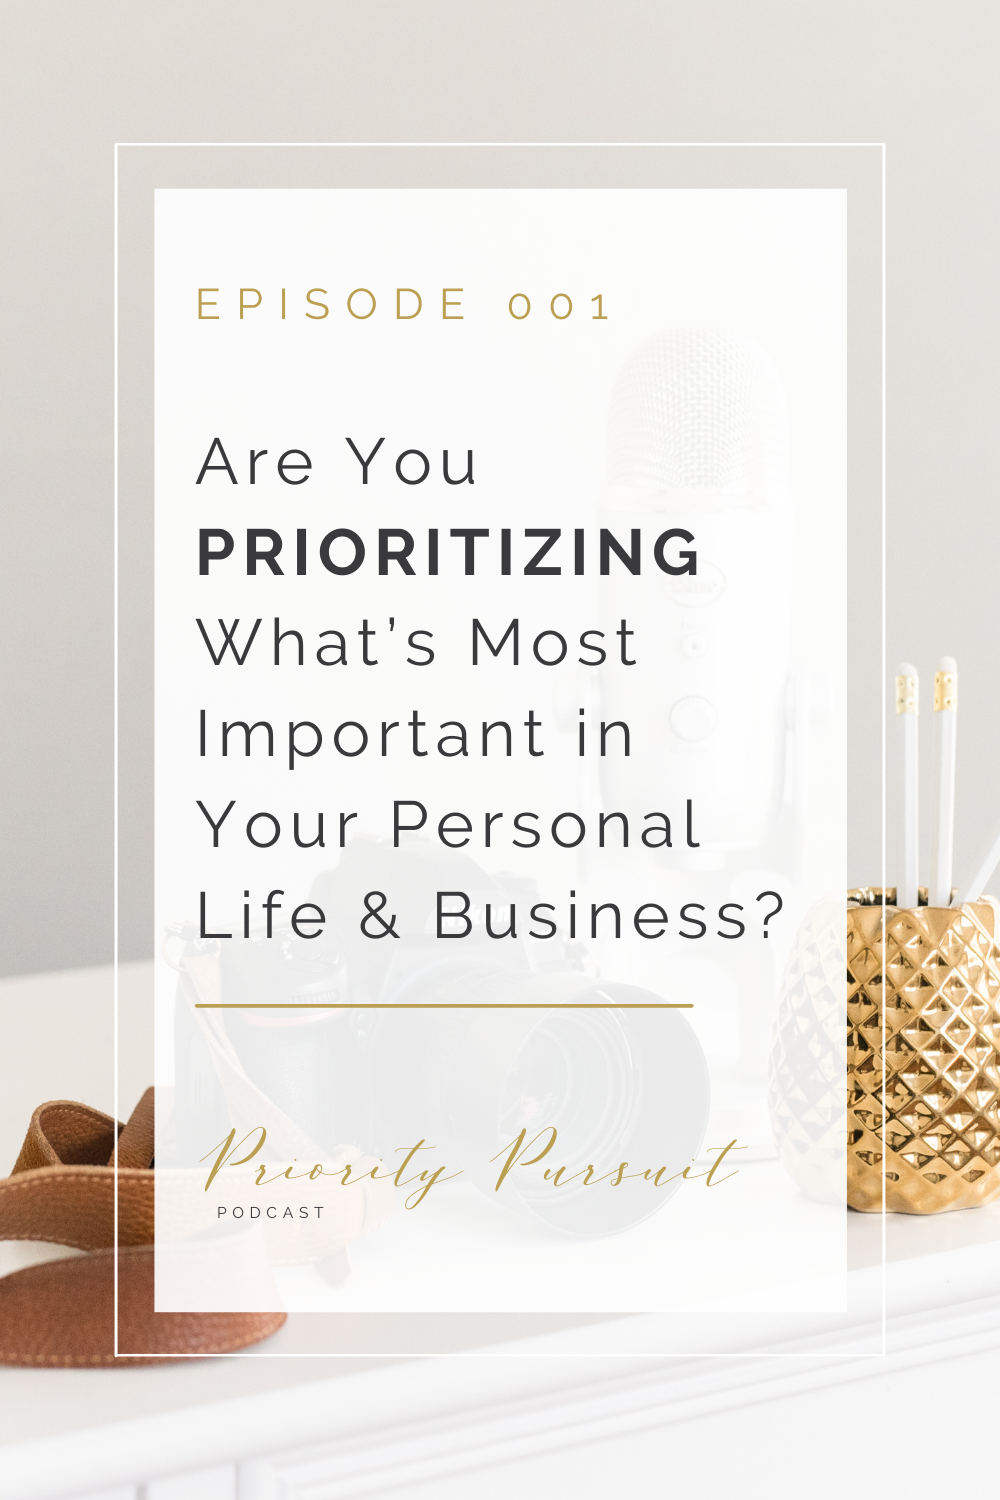 Episode 001 of The Priority Pursuit Podcast helps you assess whether or not you're prioritizing what's most important in your personal life and business